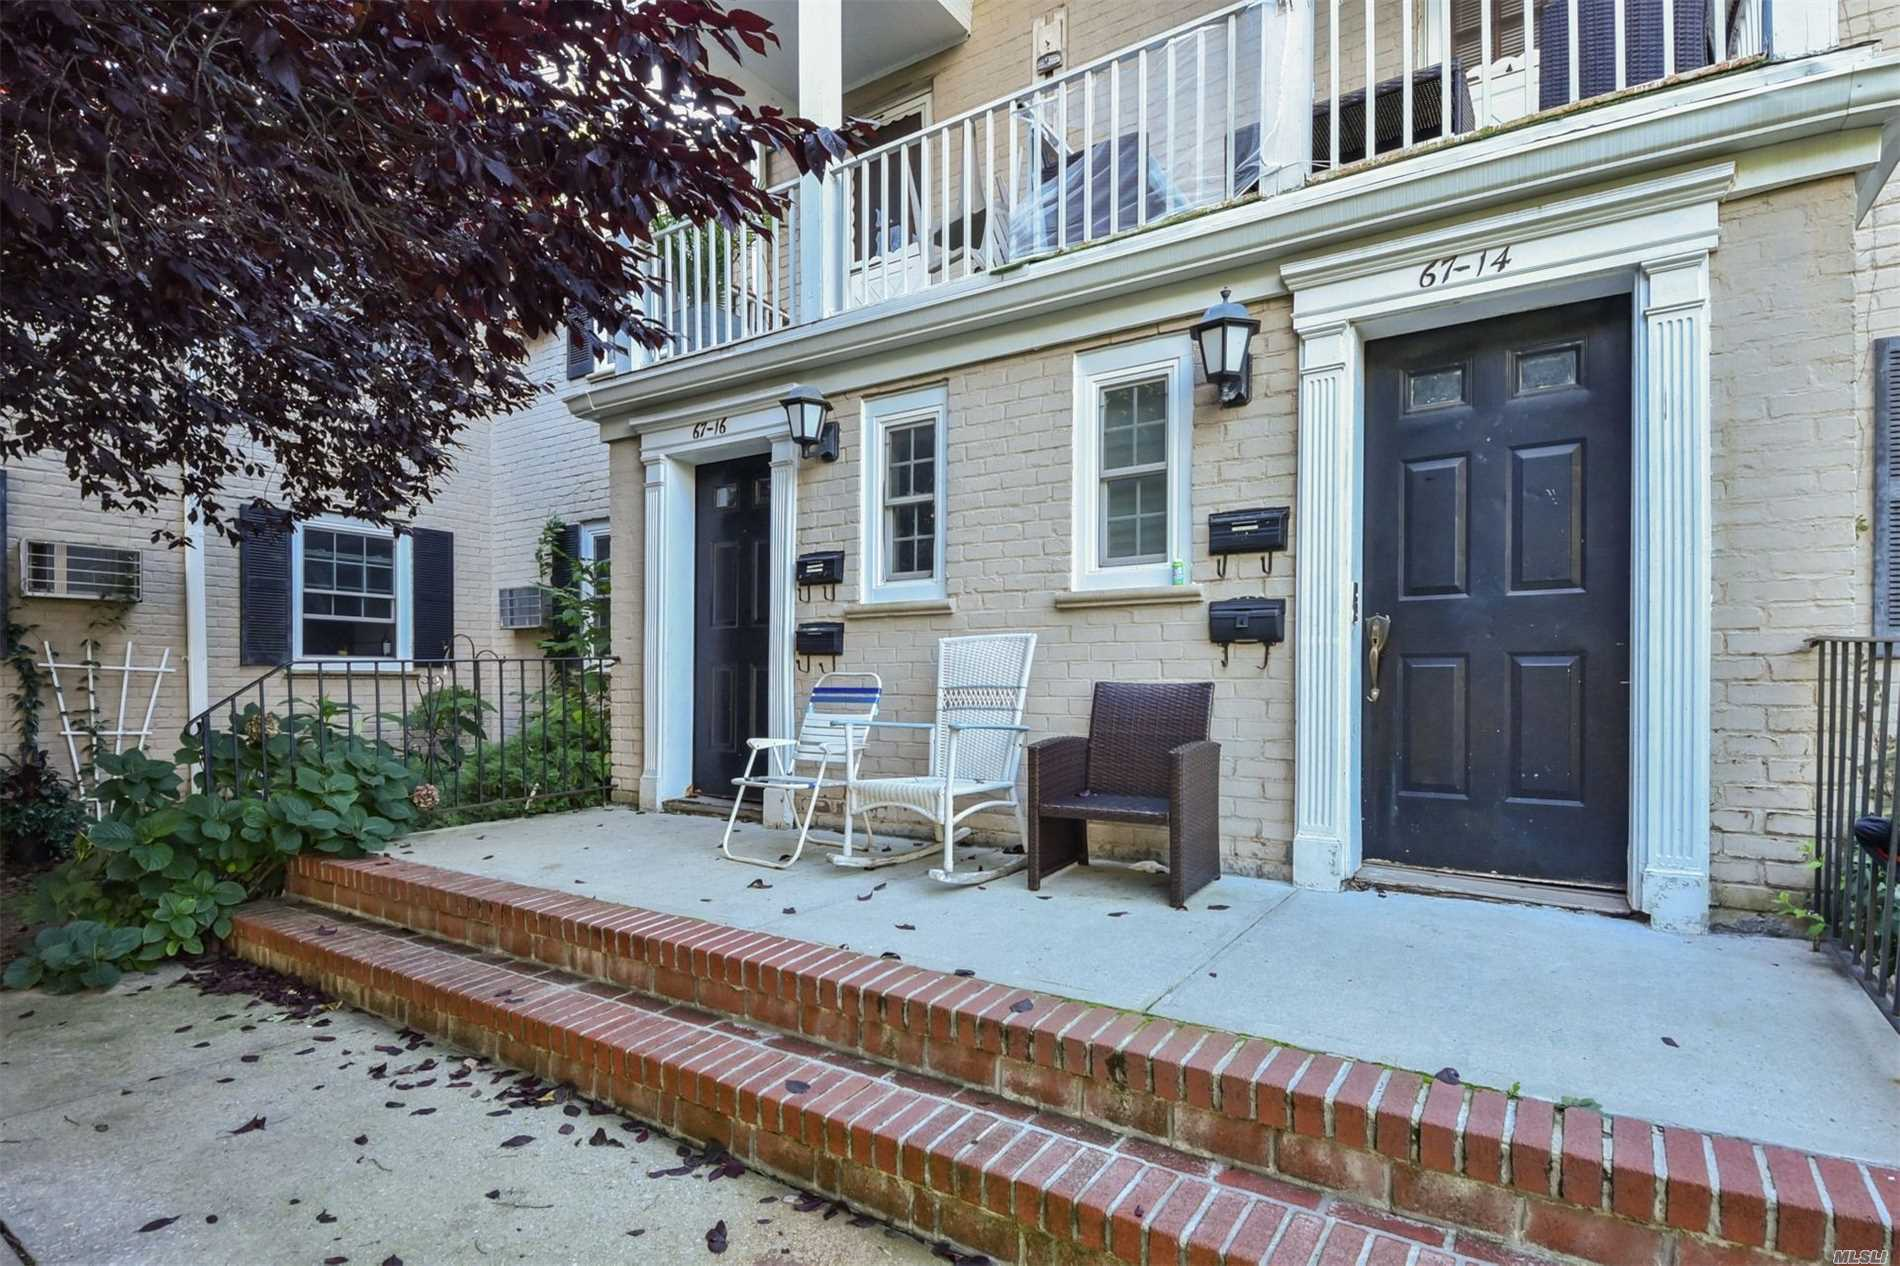 Bayside. Beautiful 3 Bedrooms, (1Br Converted To Dr) 1 Baths Co-Op In Oakland Gardens On The 1st Floor, Large Living Room, Eat In Kitchen, Dining Room, Washer/Dryer, Renovated Kitchen And Renovated Bath, Hardwood Floors, Large Private Courtyard, Close To All. Sd# 26, Washer/Dry In Unit. Dog And Cat Friendly Home. Parking Short Waiting List.